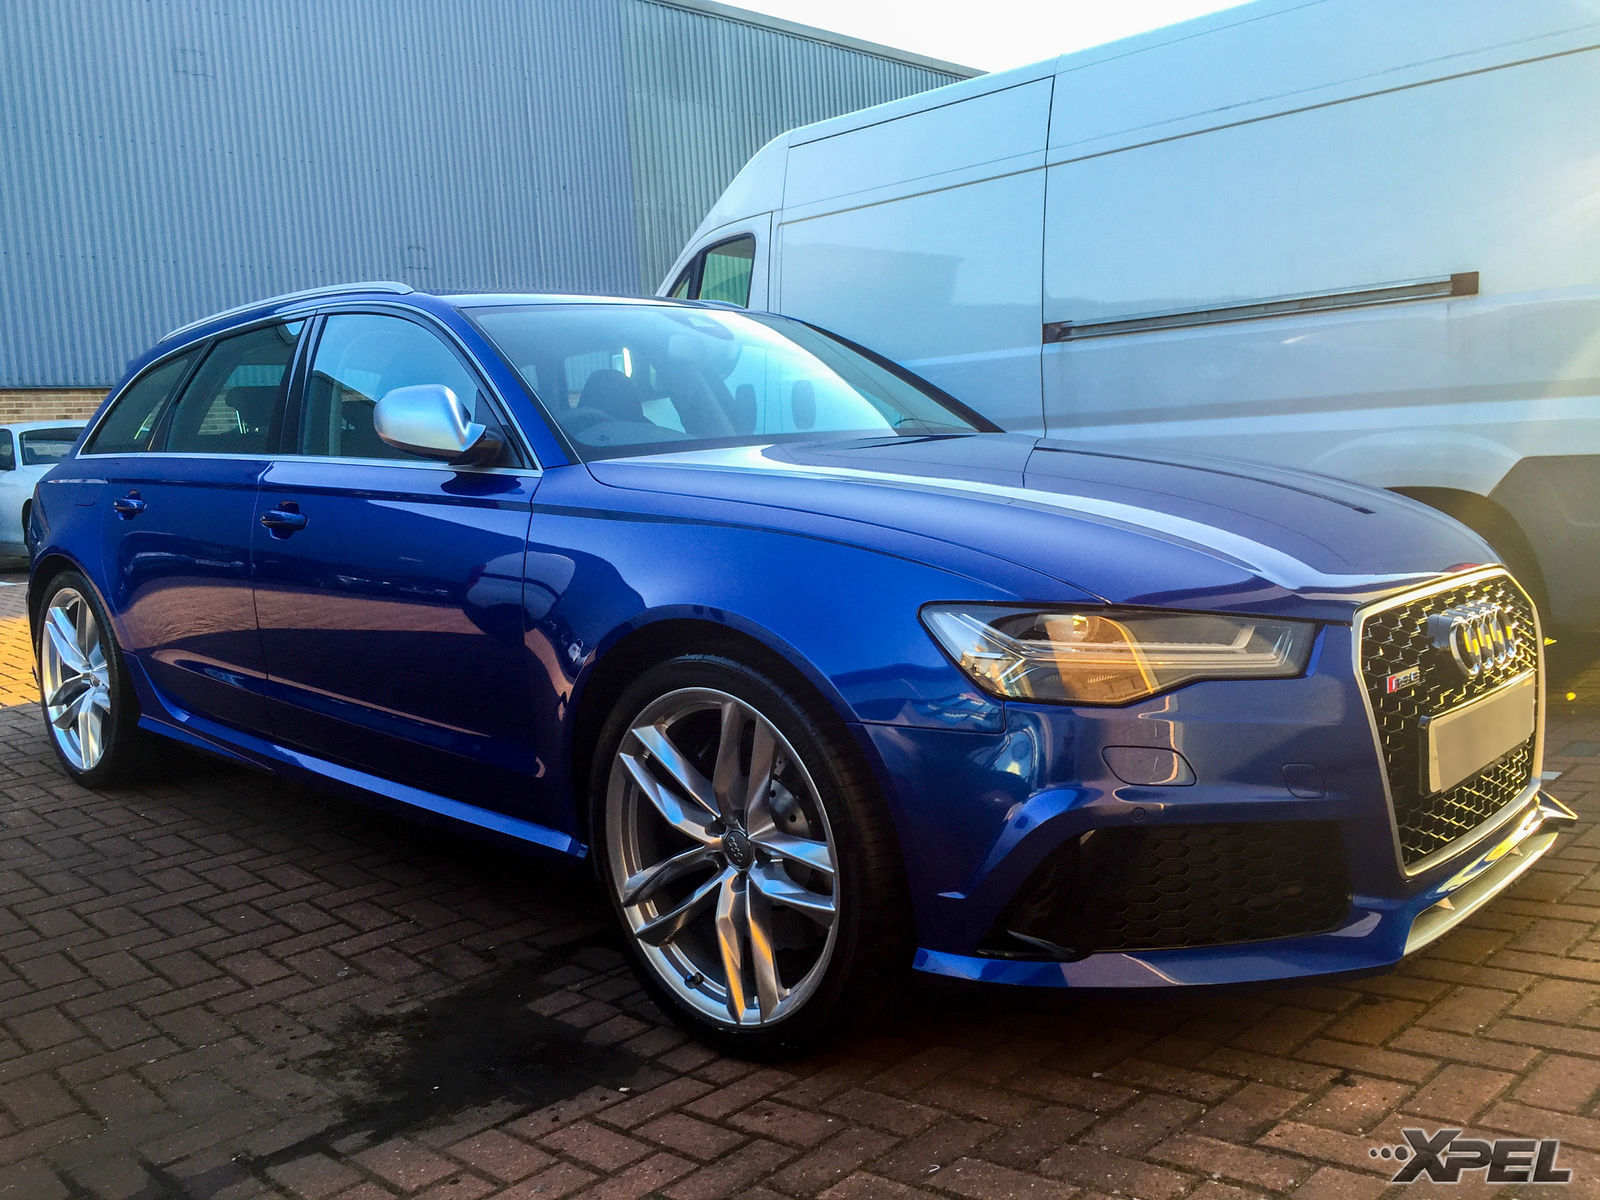 2016 Audi RS 6 | Recent installations from XPEL United Kingdom